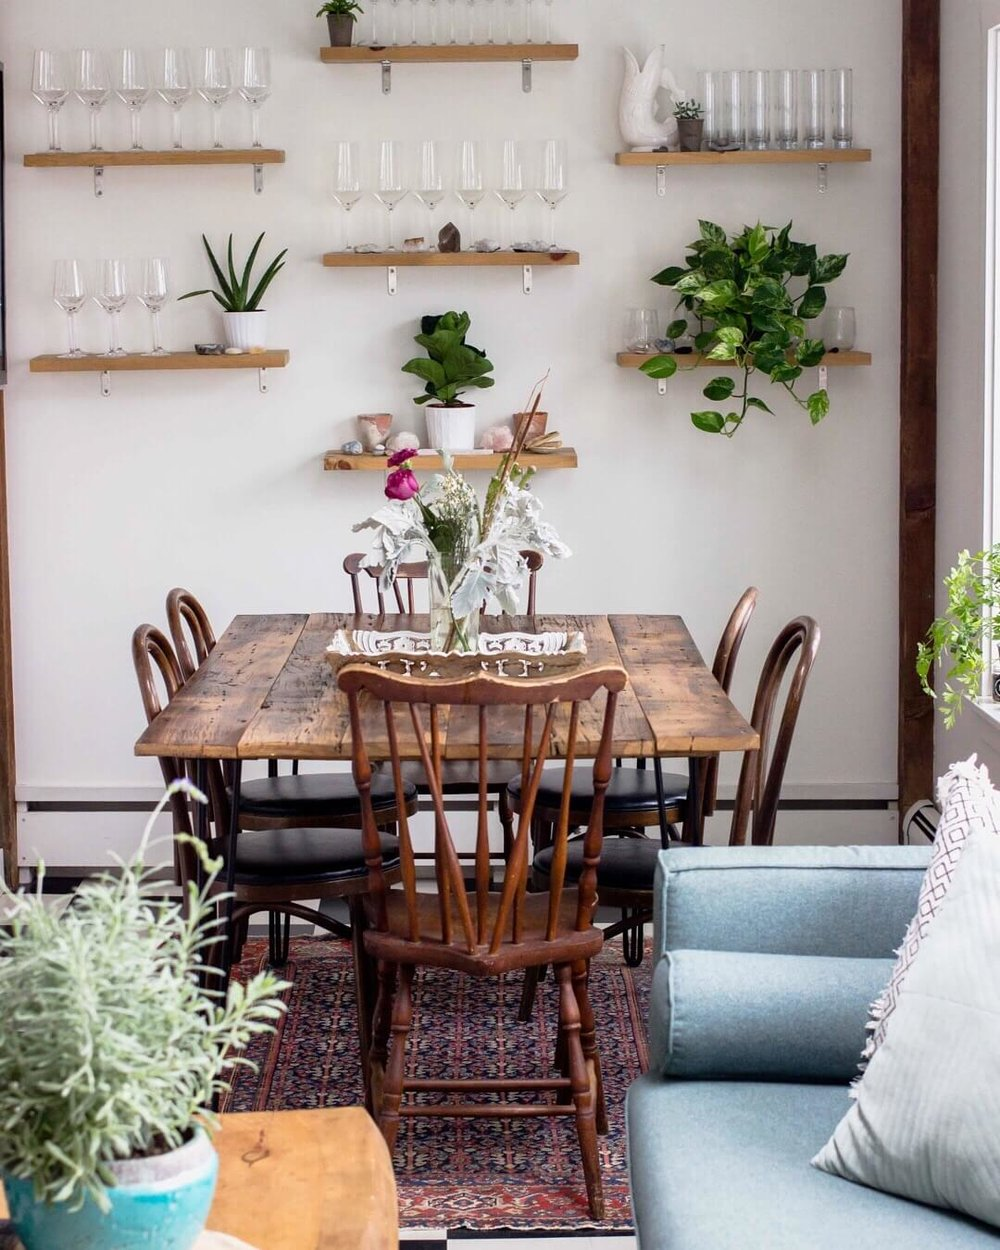 Sustainability Lifestyle and Vintage Home Decor - Farmhouse Dining Table - The Well Essentials